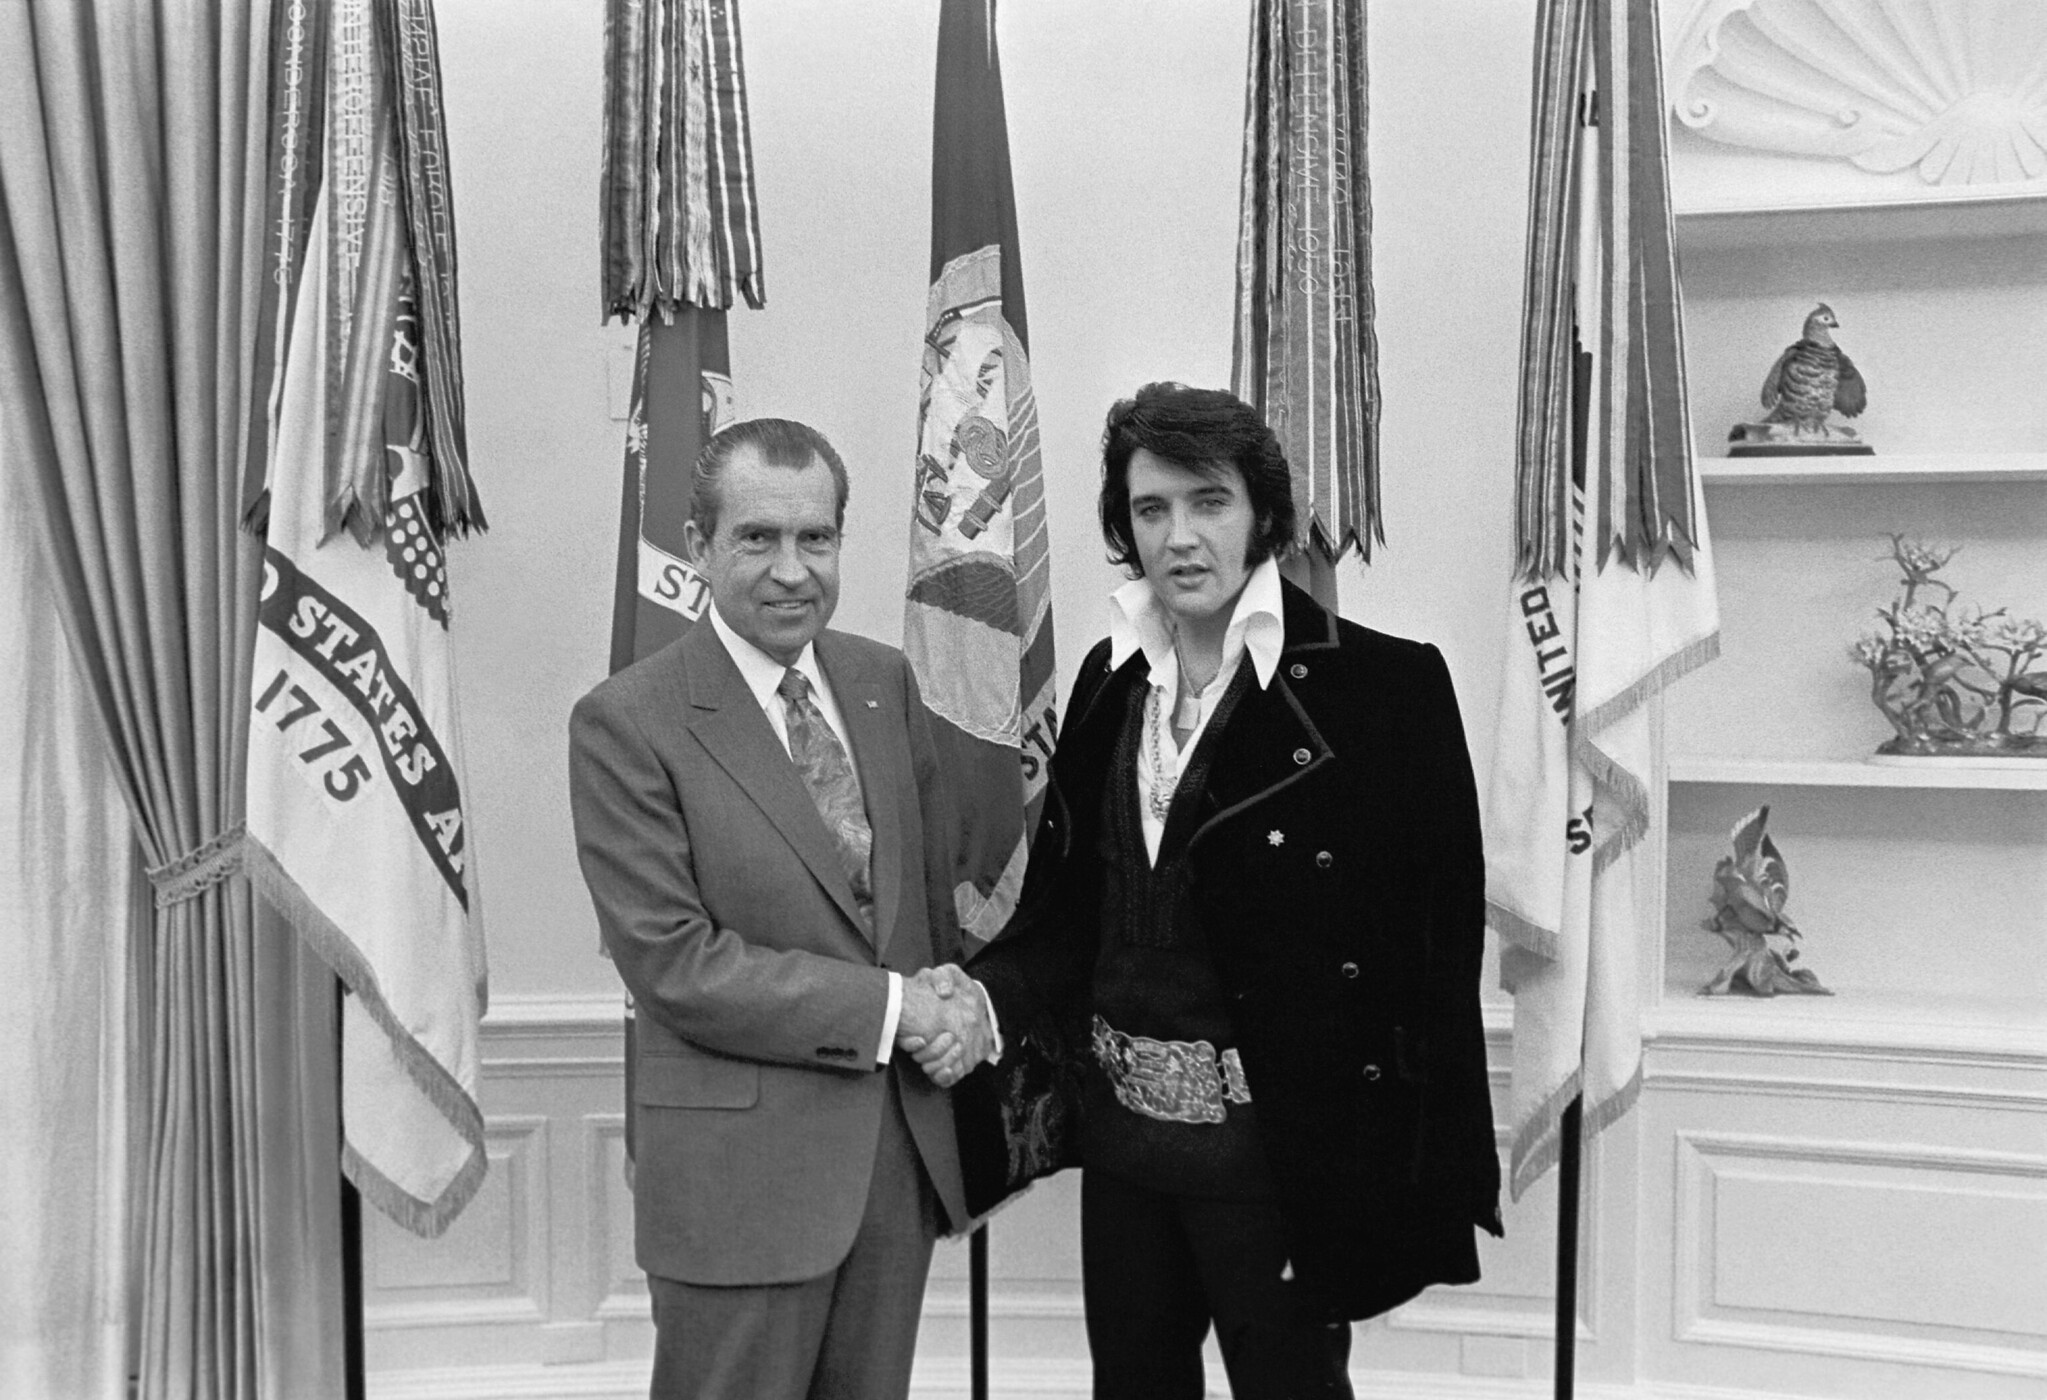 Elvis Presley meeting Richard Nixon. On December 21, 1970, at his own request, Presley met then-President Richard Nixon in the Oval Office of The White House. The Nixon Library & Birthplace sells a number of souvenir items with this photo and the caption,